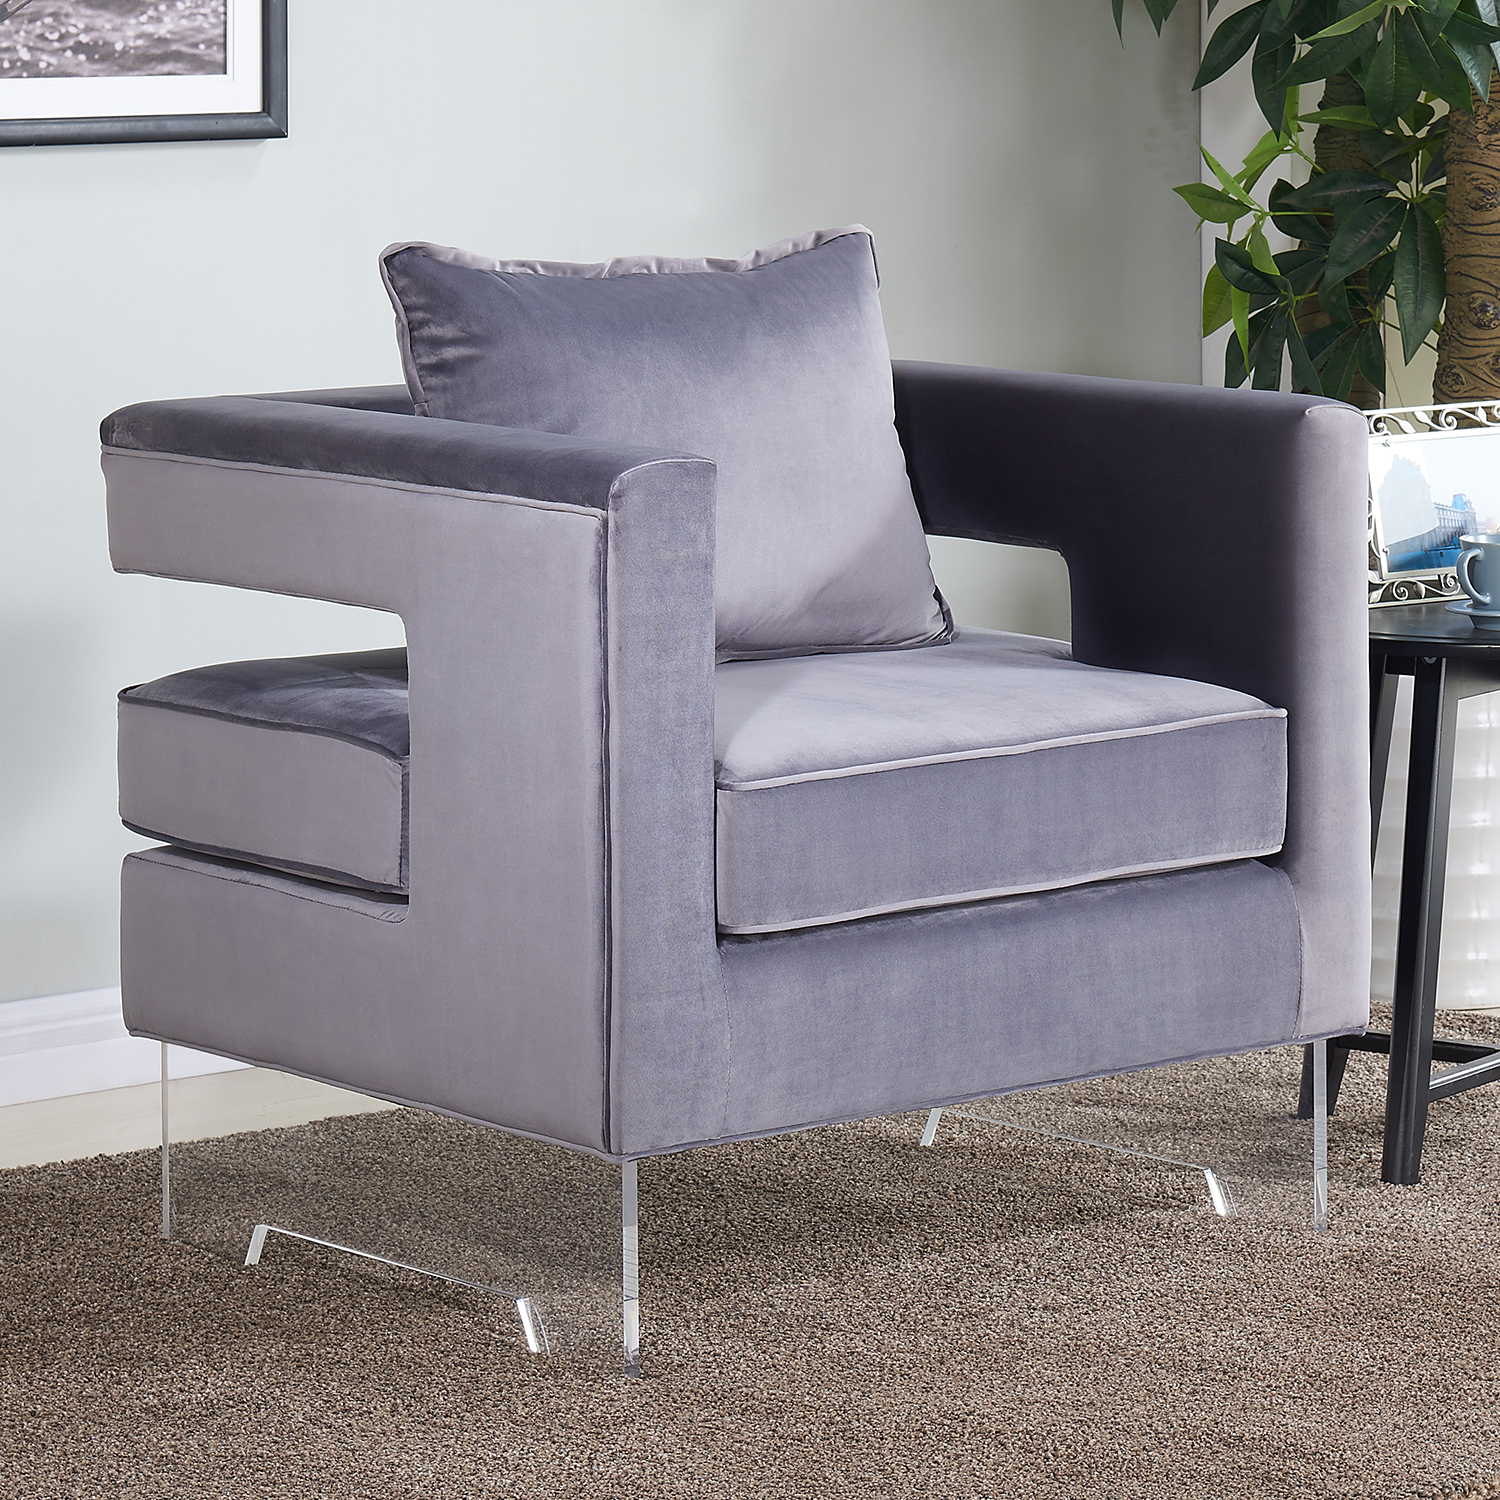 carson grey velvet accent chair w cut out back on acrylic legs